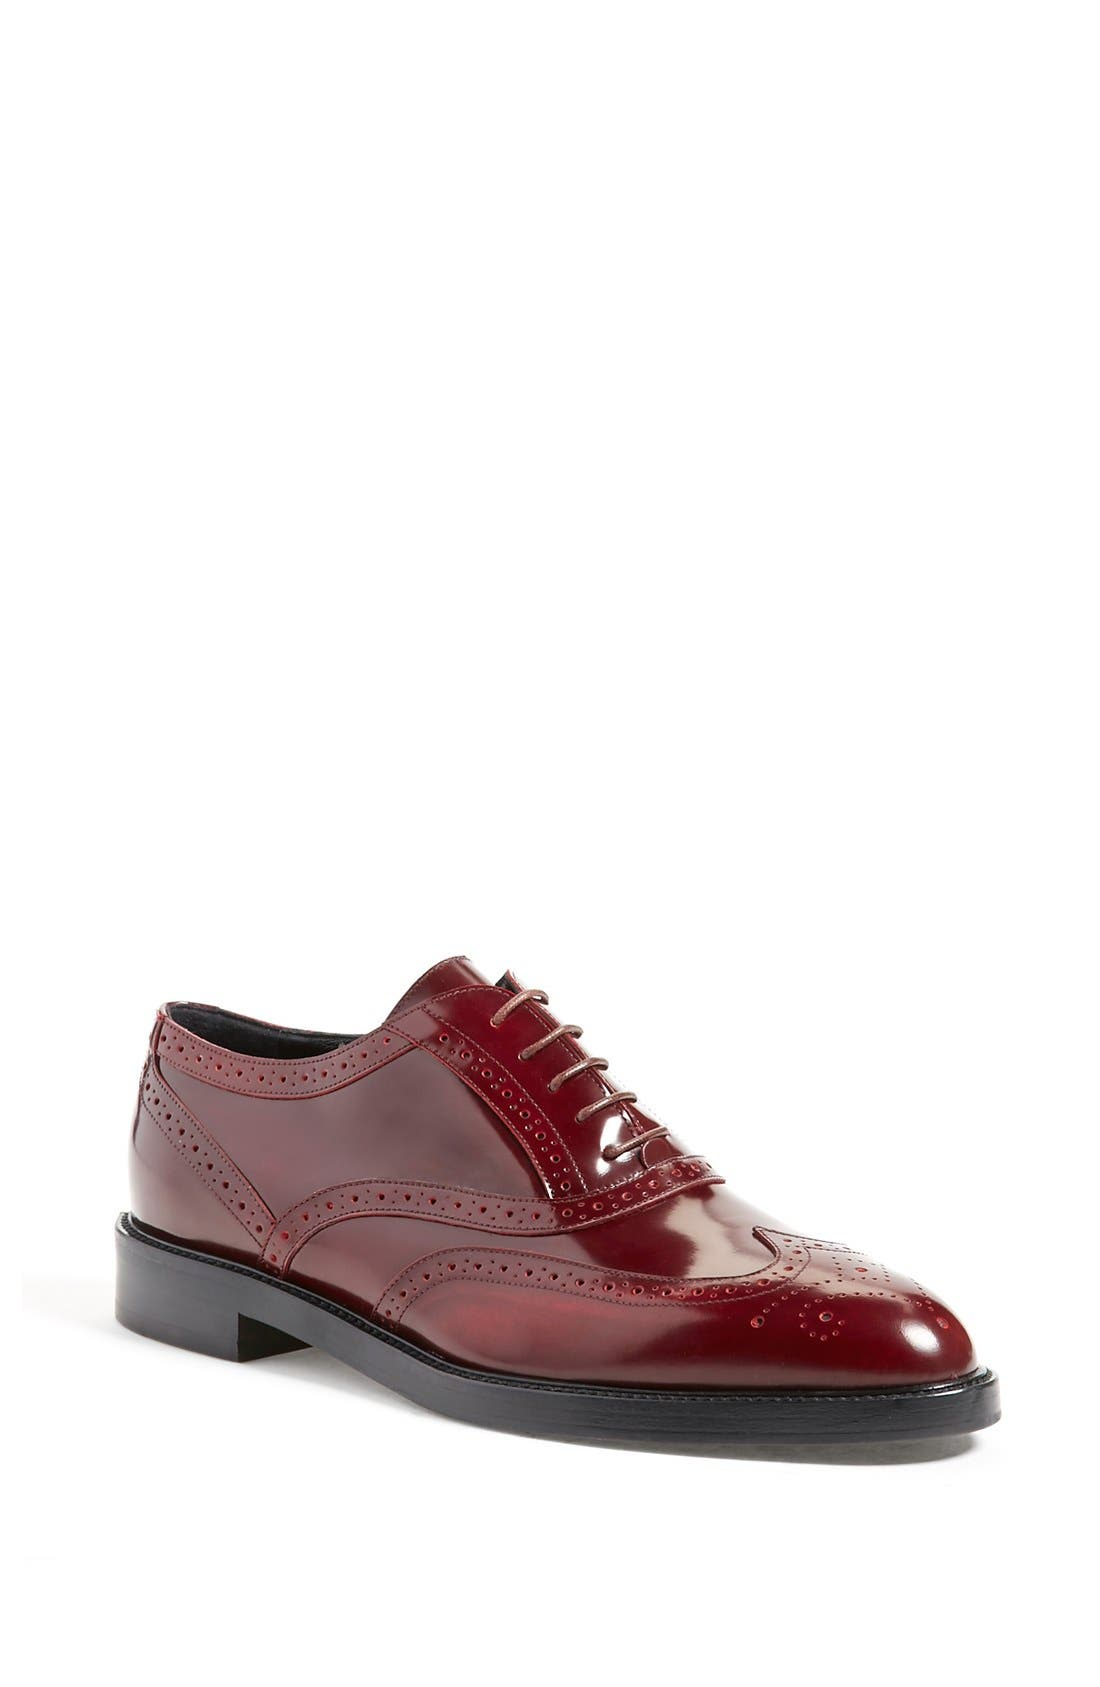 Main Image - Burberry 'Gennie' Lace-Up Oxford (Women)